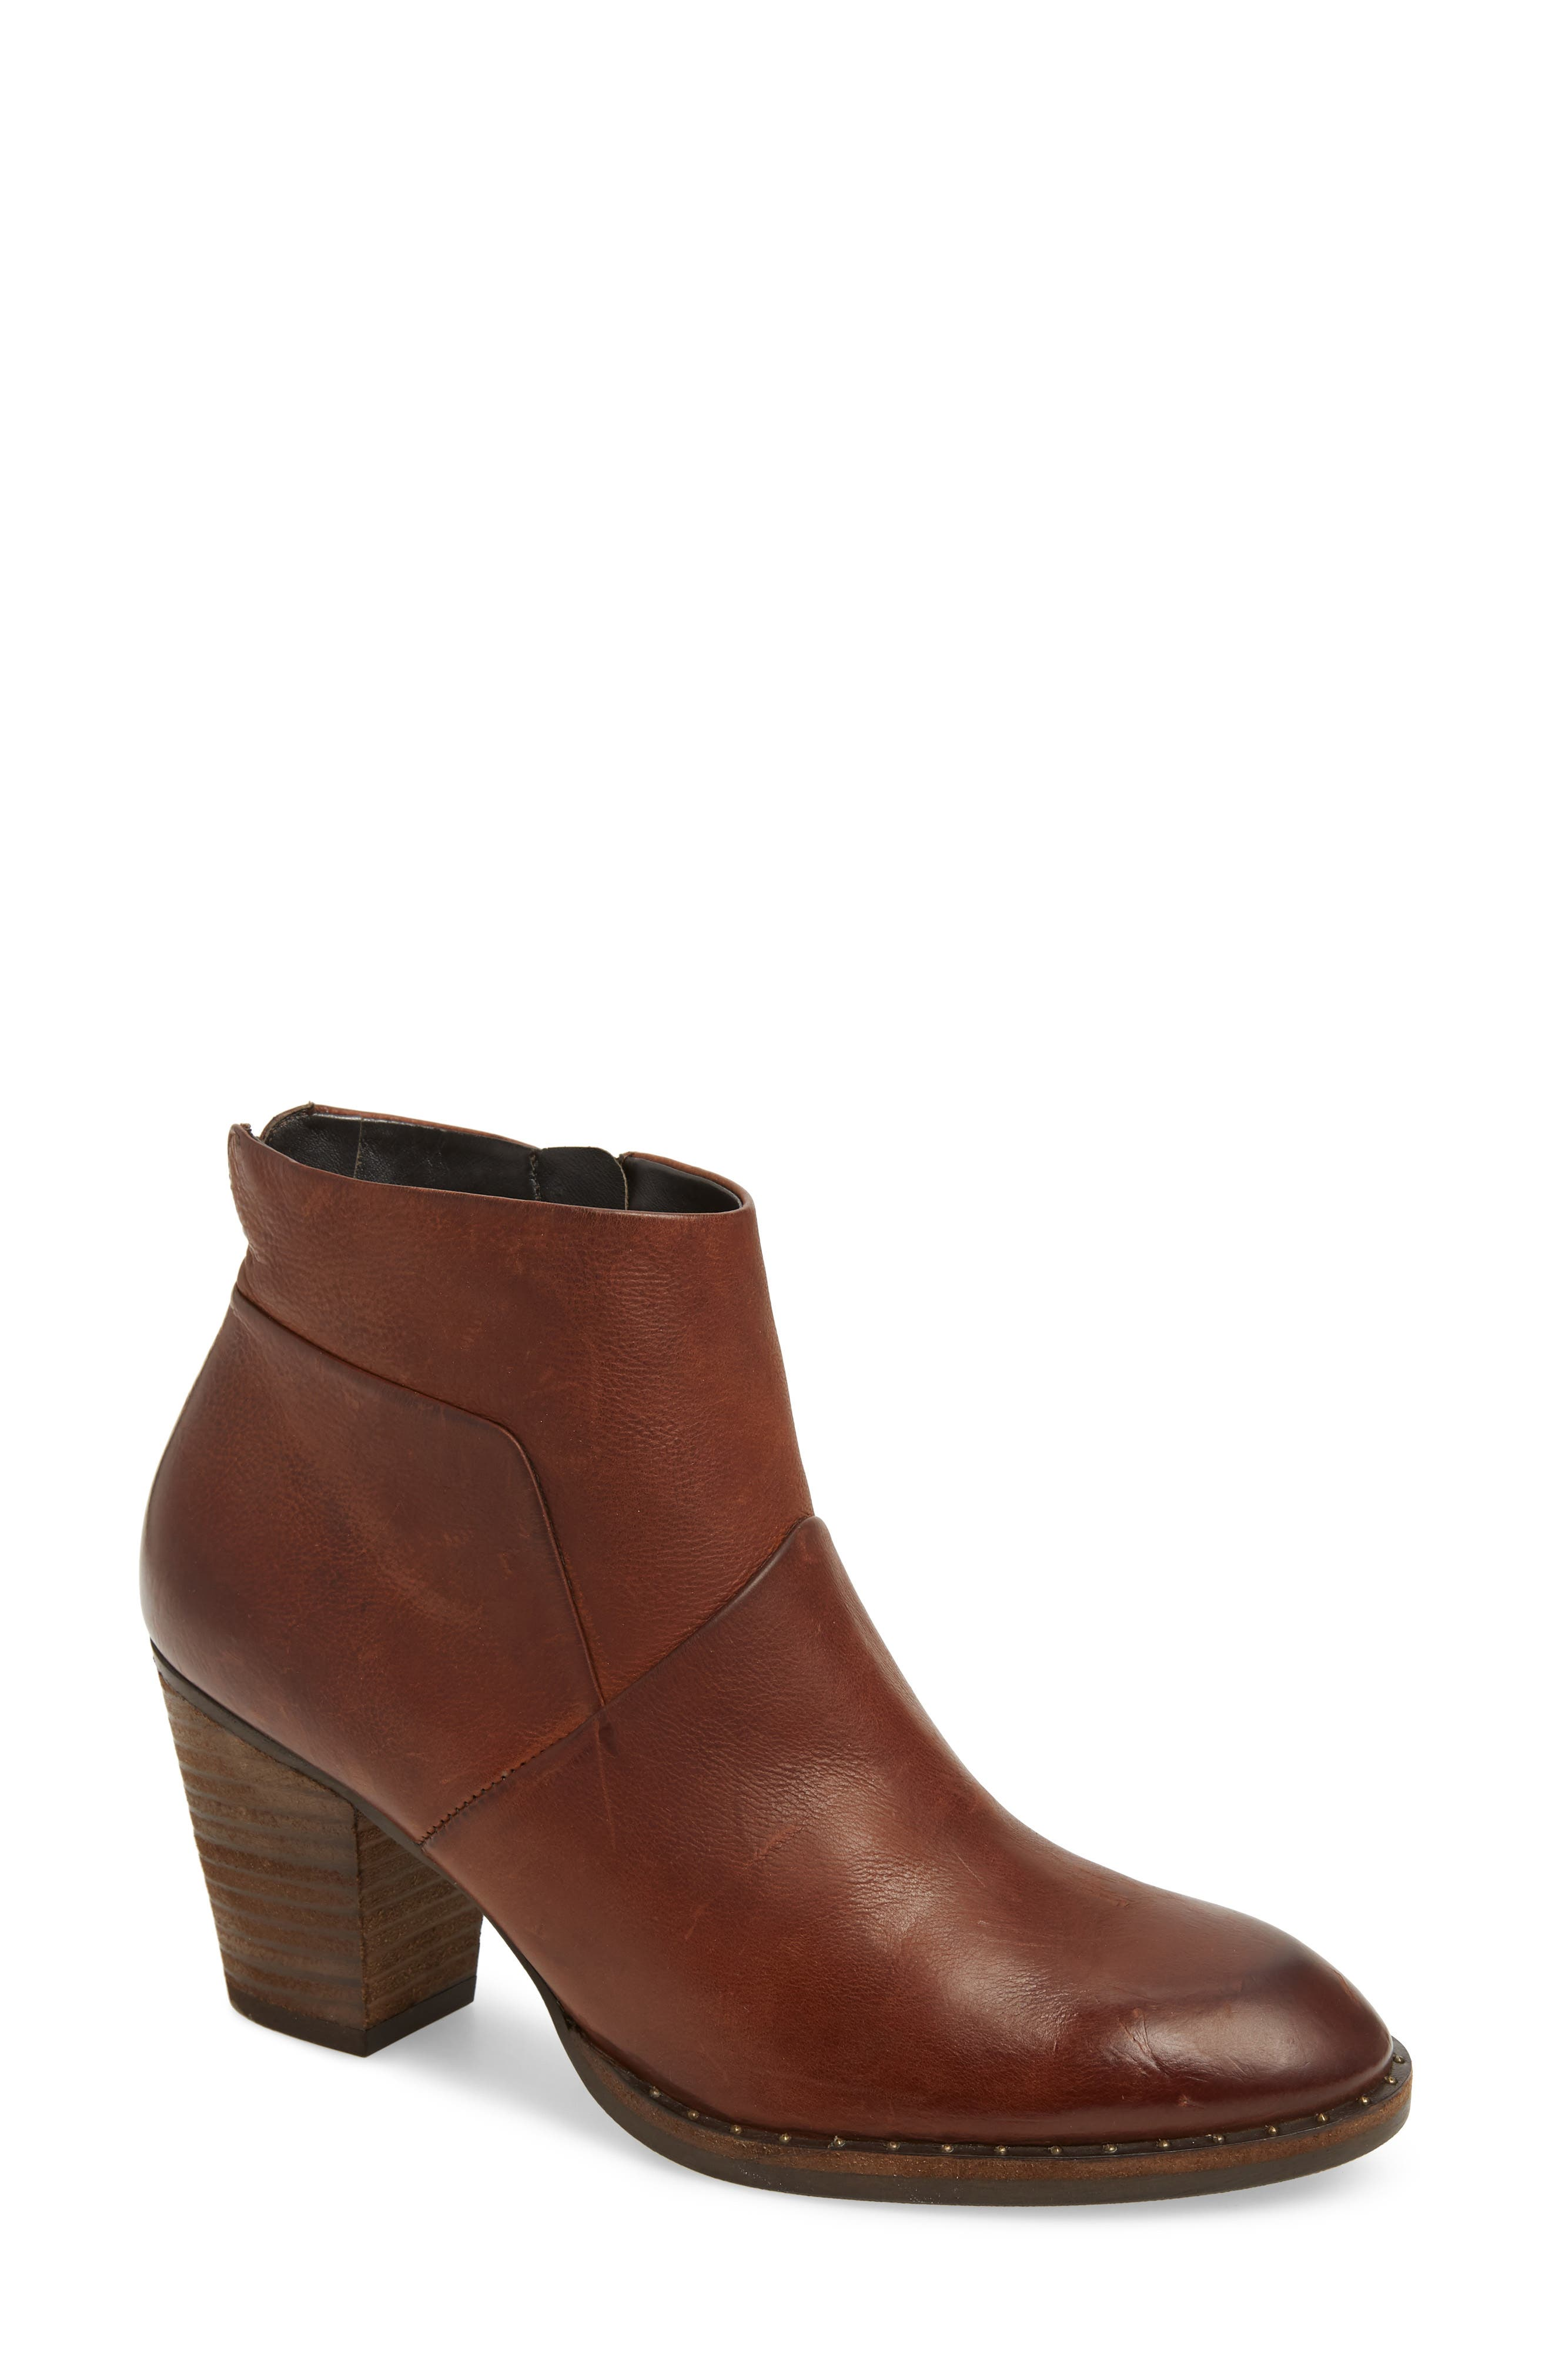 Stella Bootie,                             Main thumbnail 1, color,                             SADDLE LEATHER